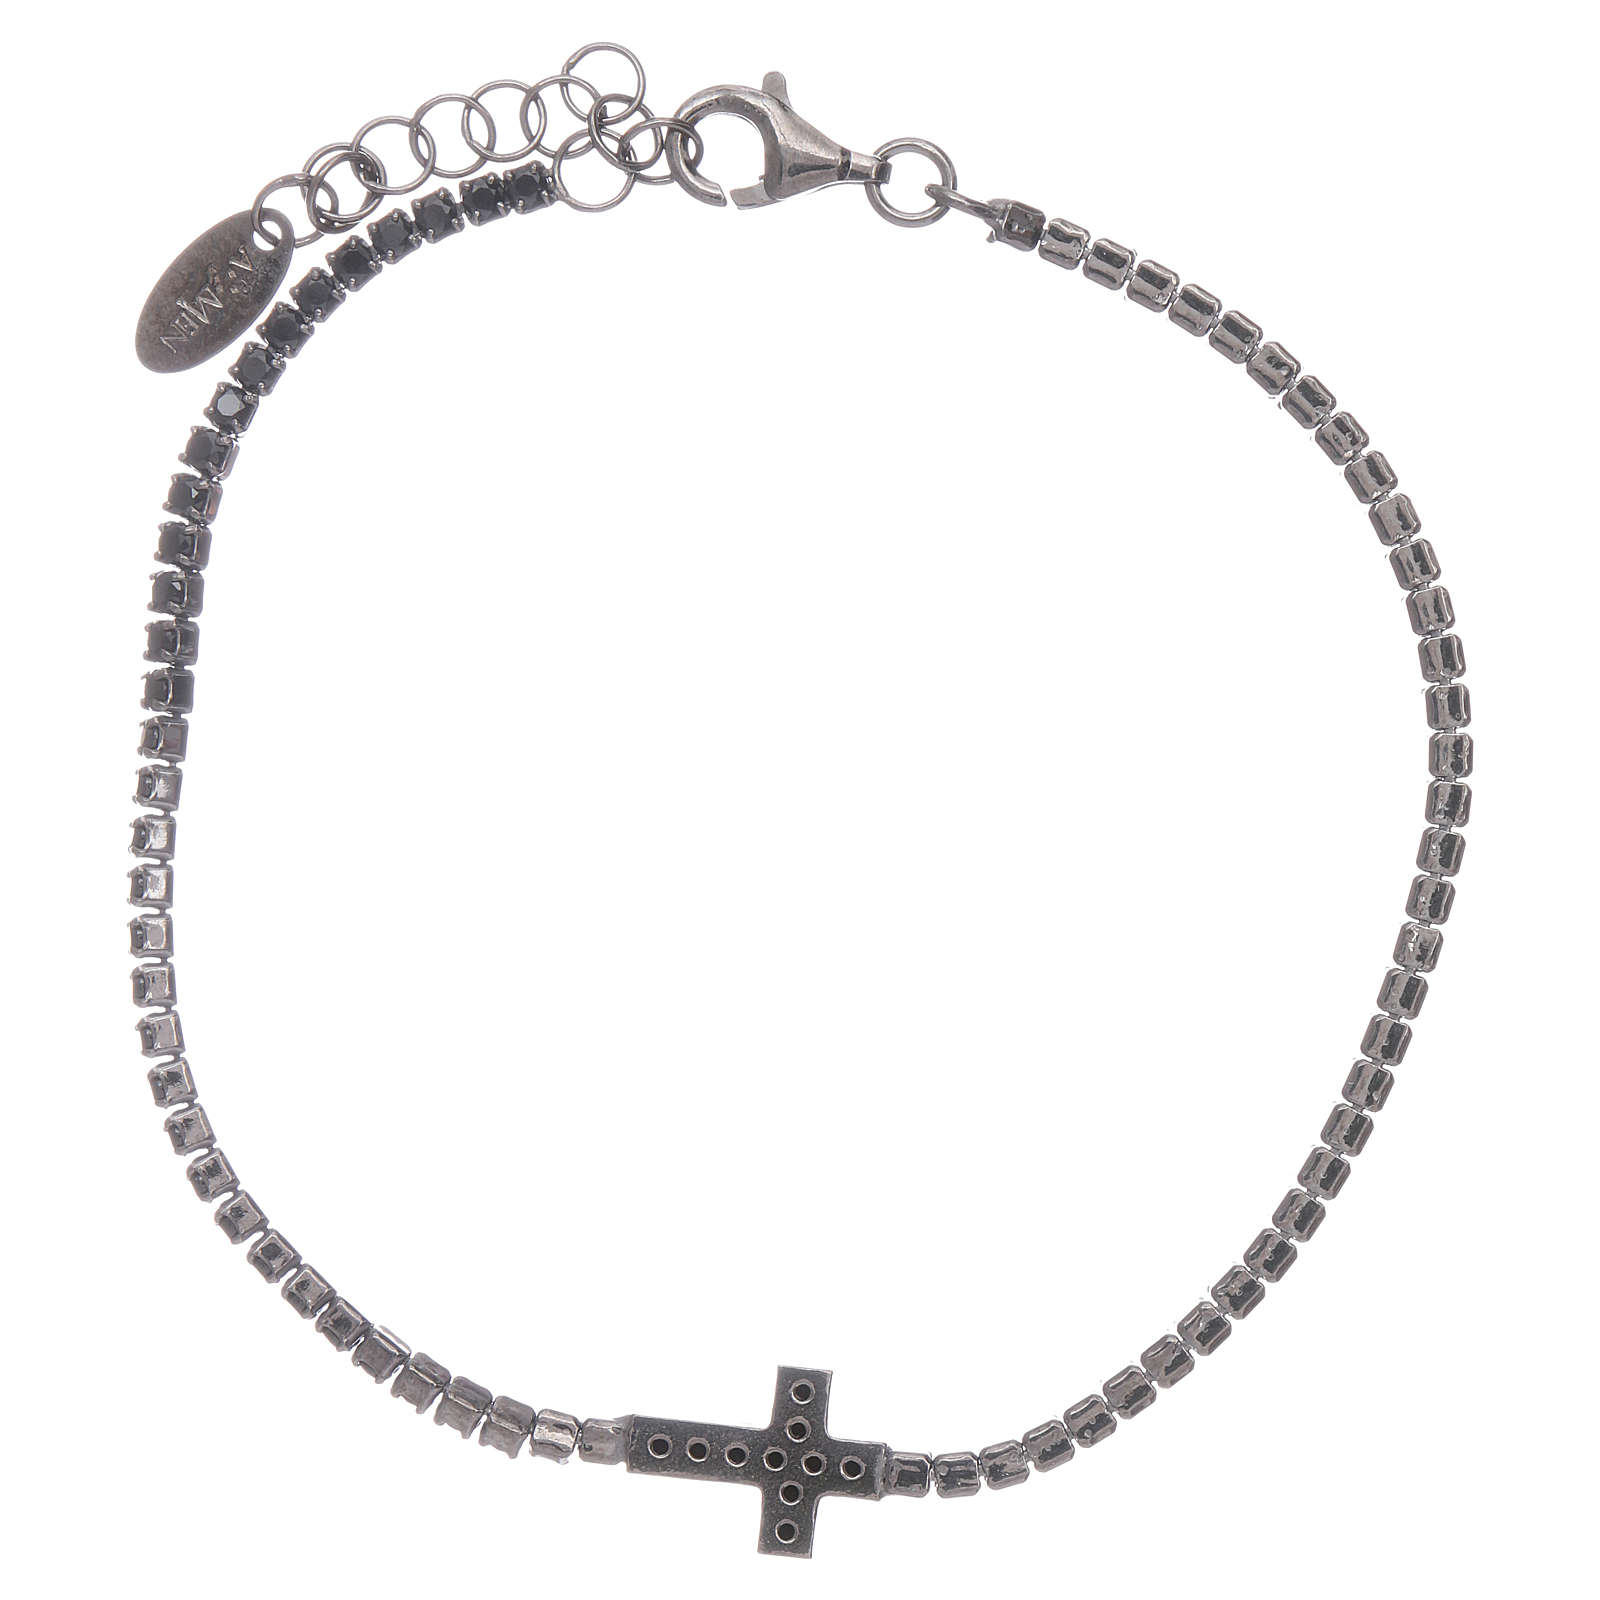 AMEN burnished 925 sterling silver tennis bracelet with black zircons  and cross 4